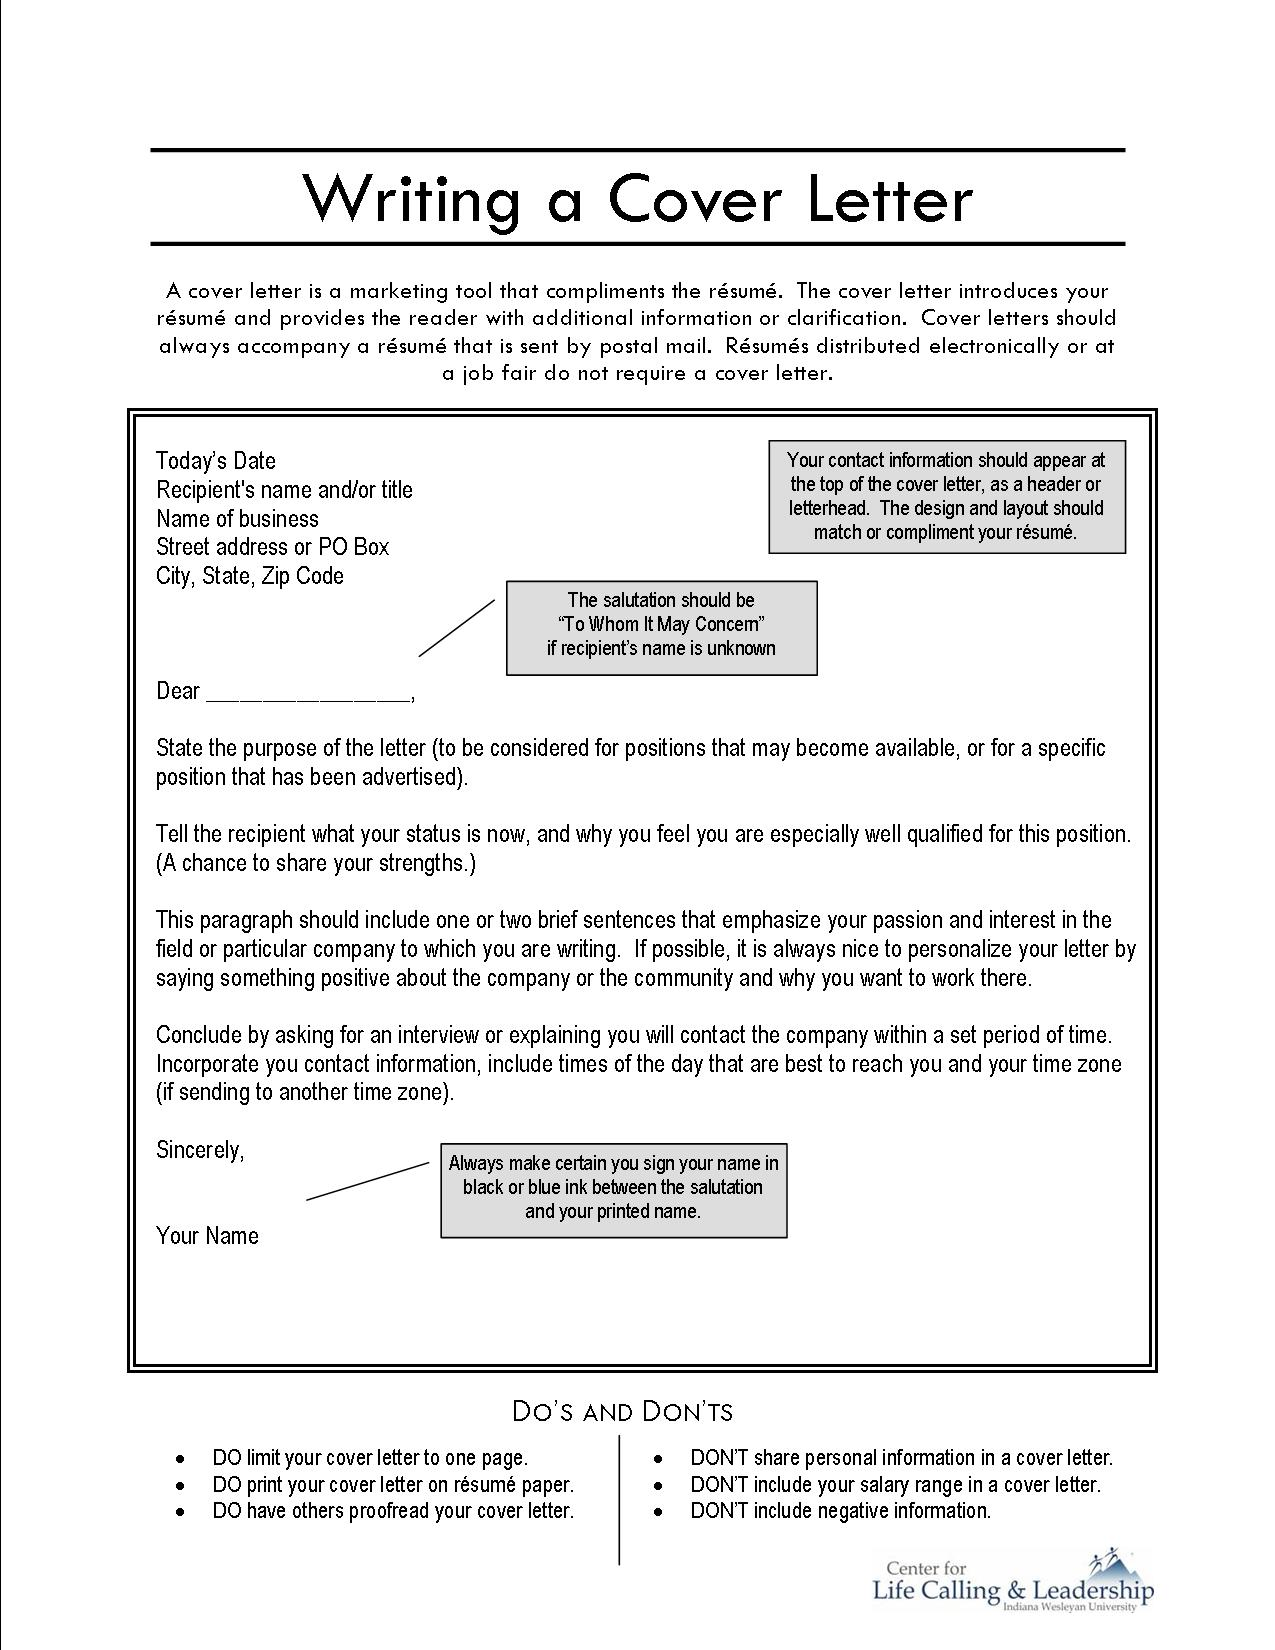 cover letter samples cover letter samples kimboleeey how to write